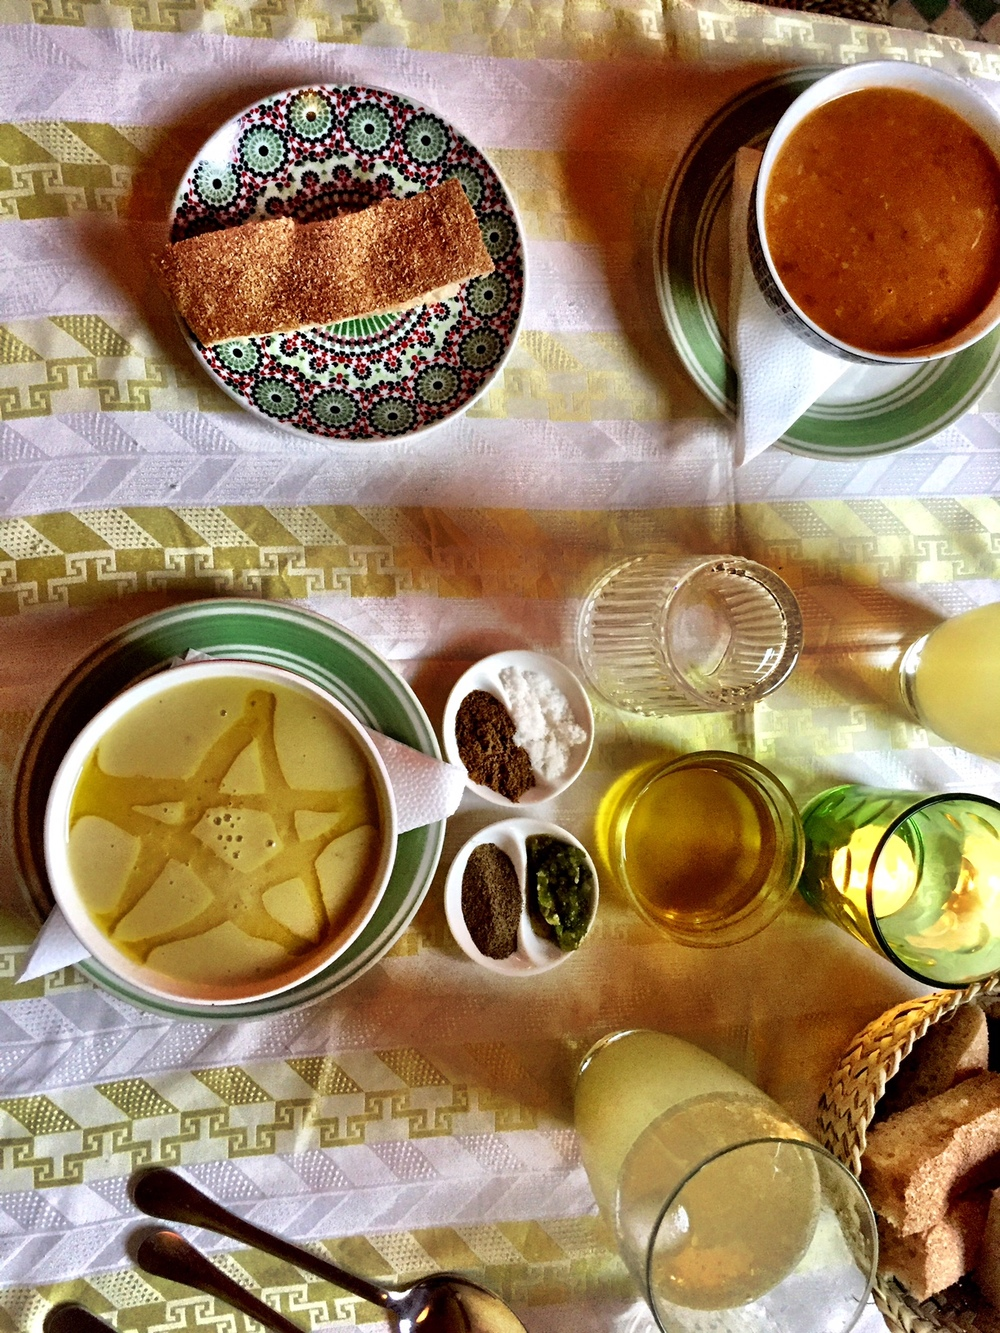 We started with a soup course: harira for Duke and bessara, a fava bean soup with a Moroccan star in oil, for Wally